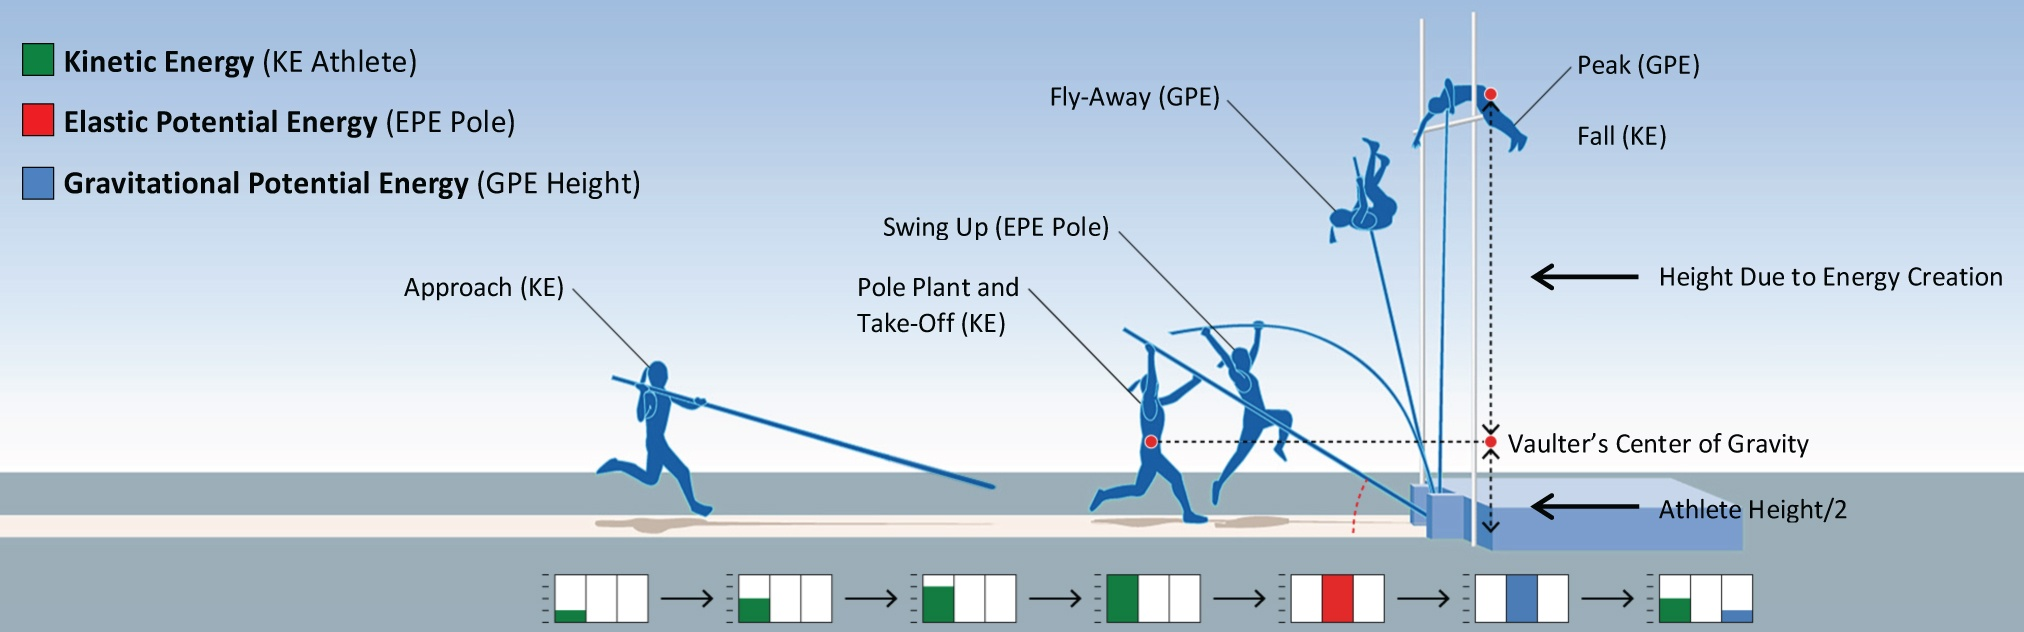 the physics of pole vaulting essay 4 energy transformations in the pole vault by np linthorne in pole vaulting, the conversion of kinetic energy to gravitational potential energy is.